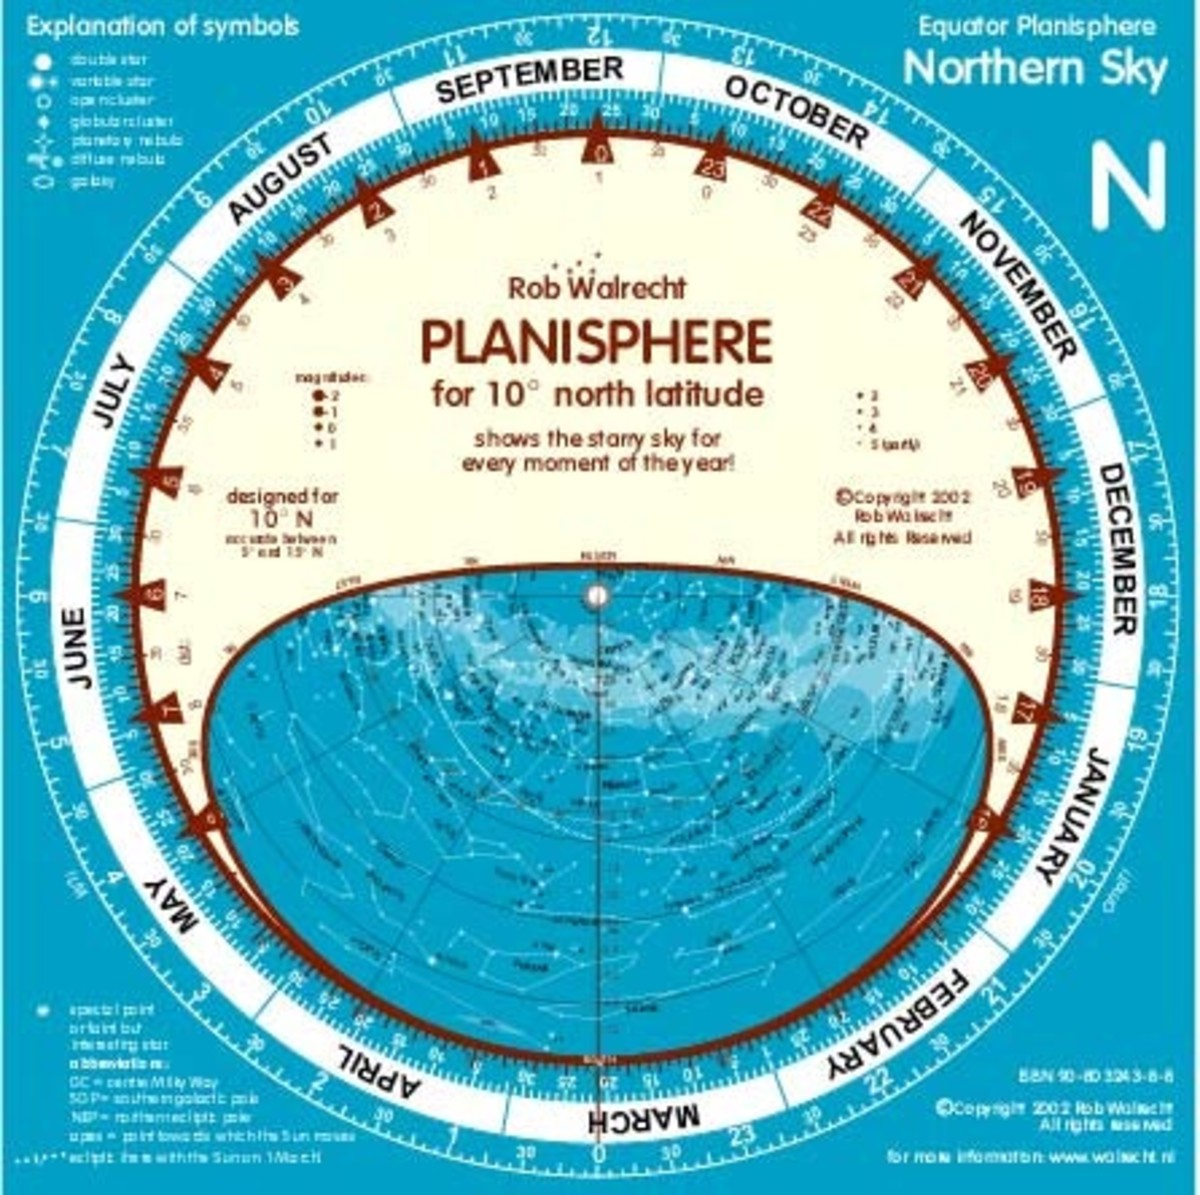 This one of many version of planisphere or star finder chart available on the market.